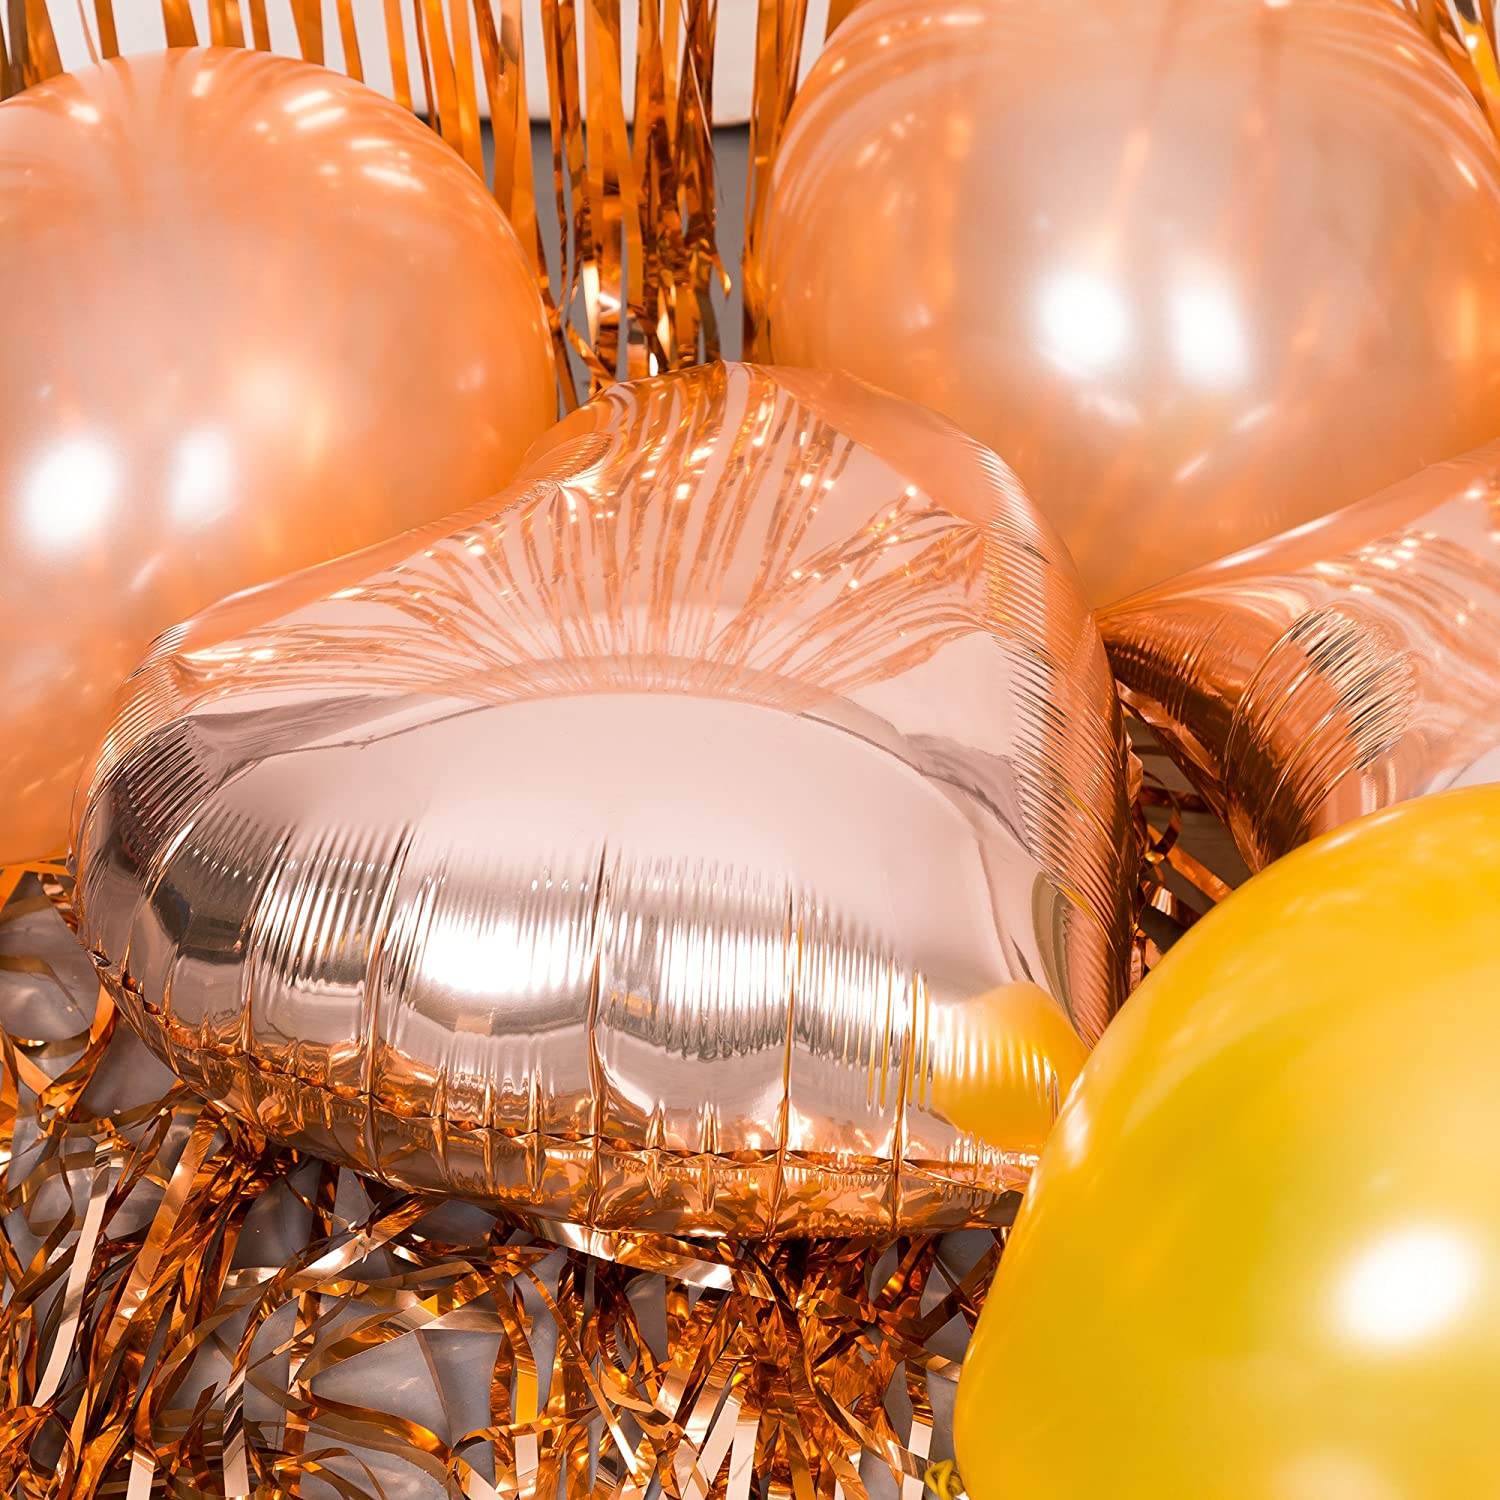 Birthday Decorations Party supplies Kit Rose Gold Happy Birthday Letter Foil Balloons Latex Balloons,Metallic Tinsel Foil Fringe Curtains